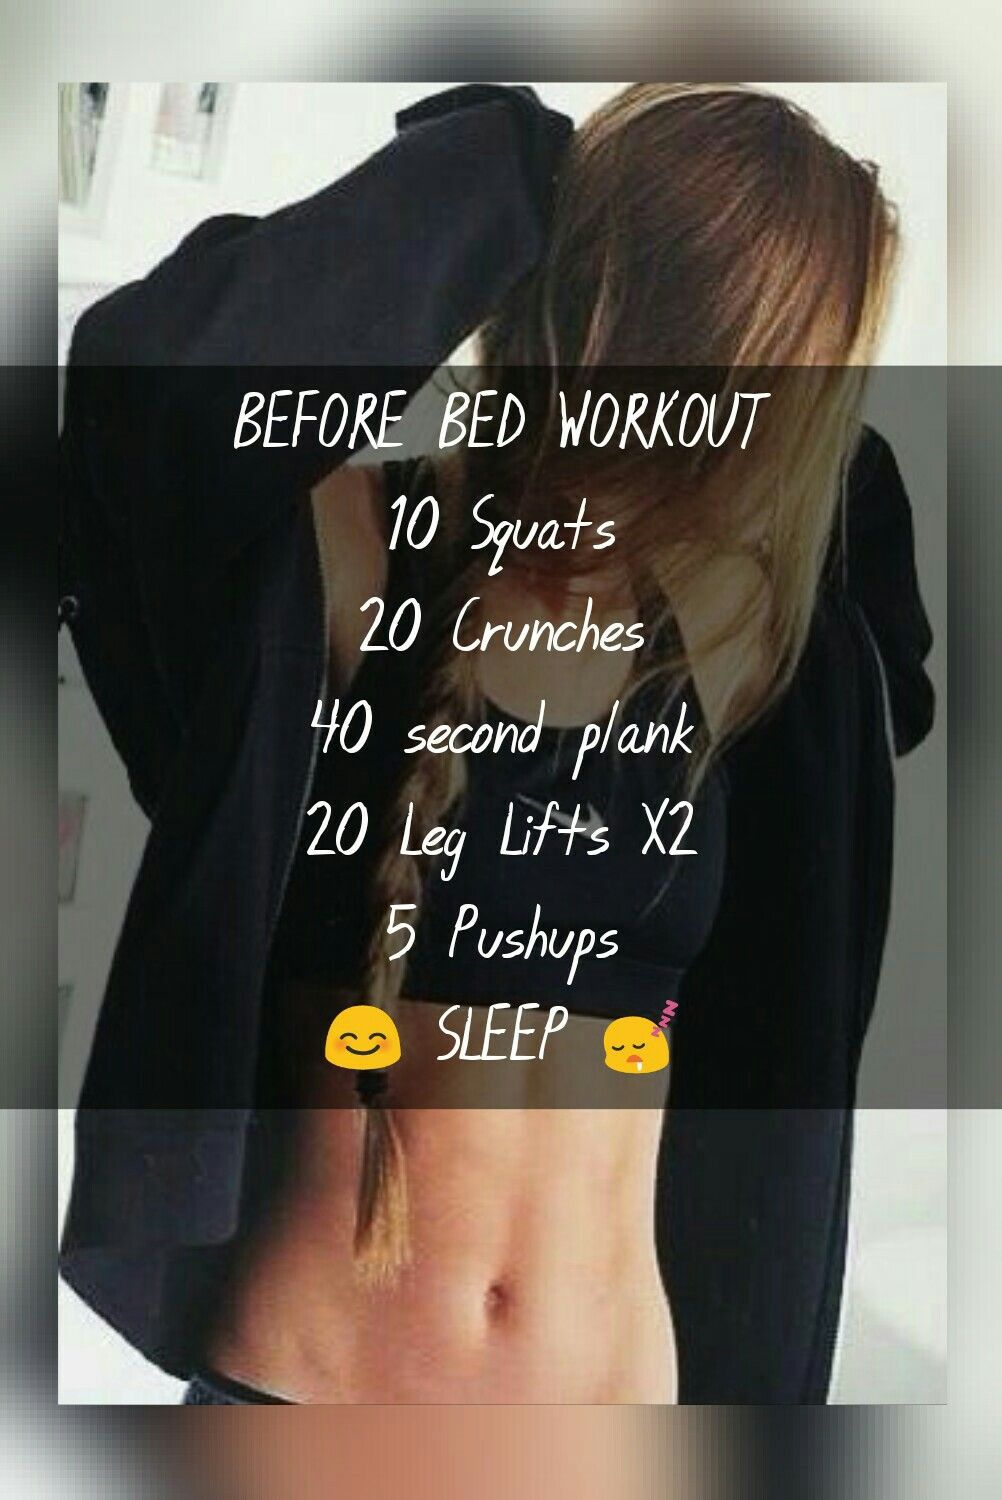 Should You Work Out BeforeBed